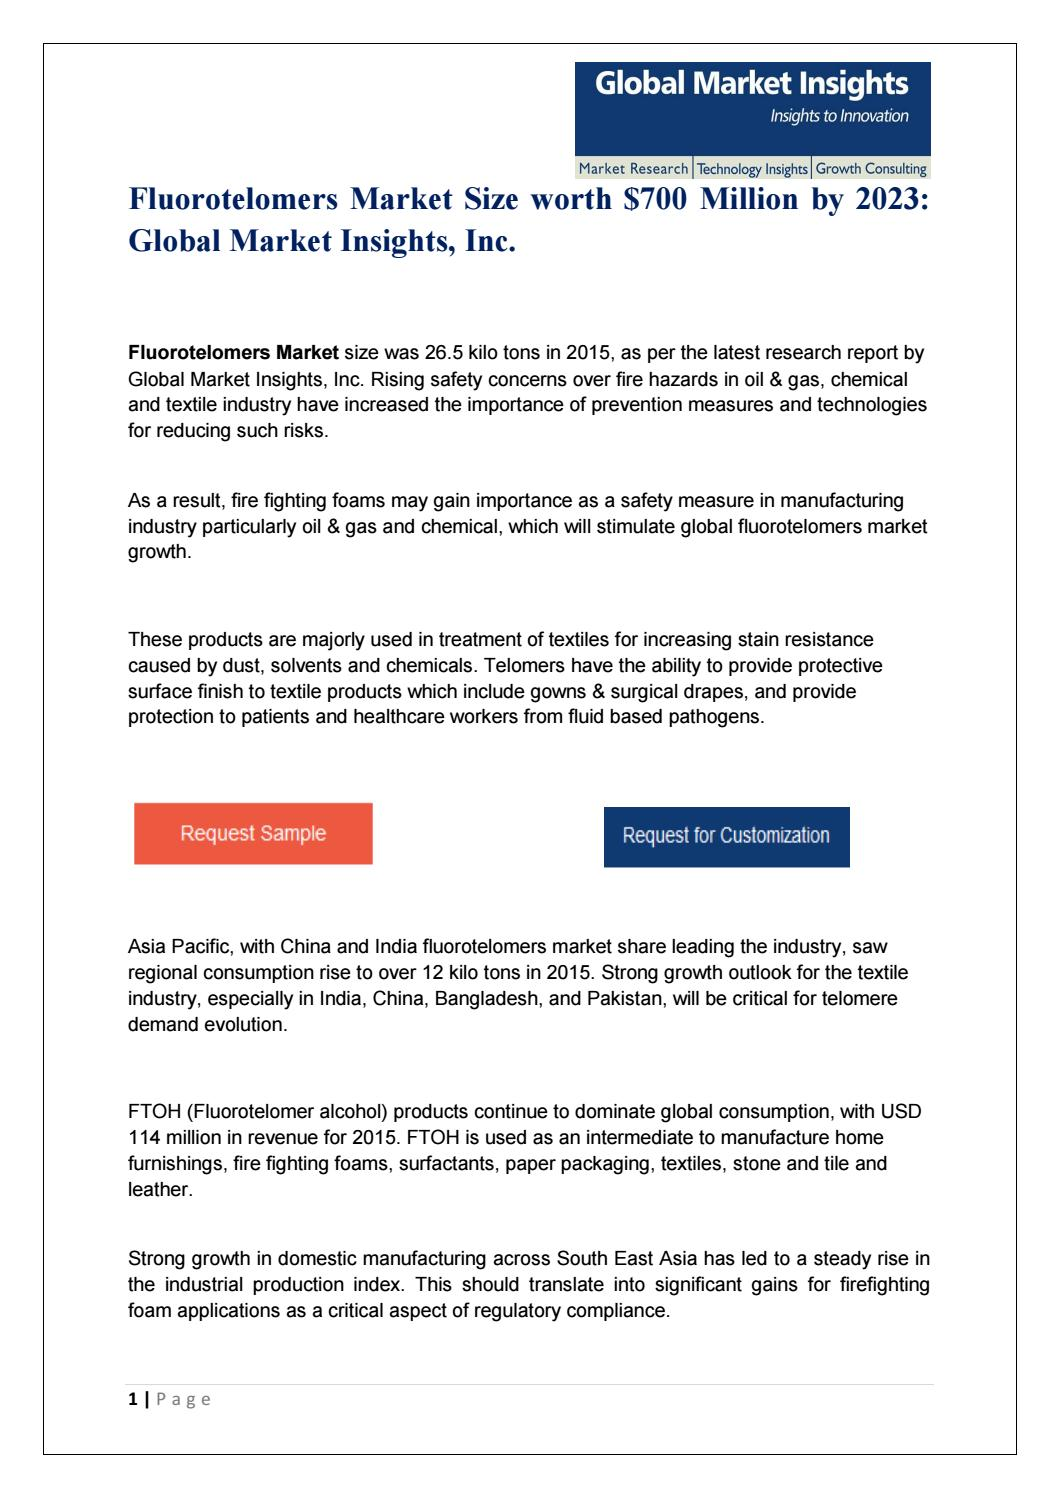 Pdf for Fluorotelomers Market: Global Market Insights, Inc